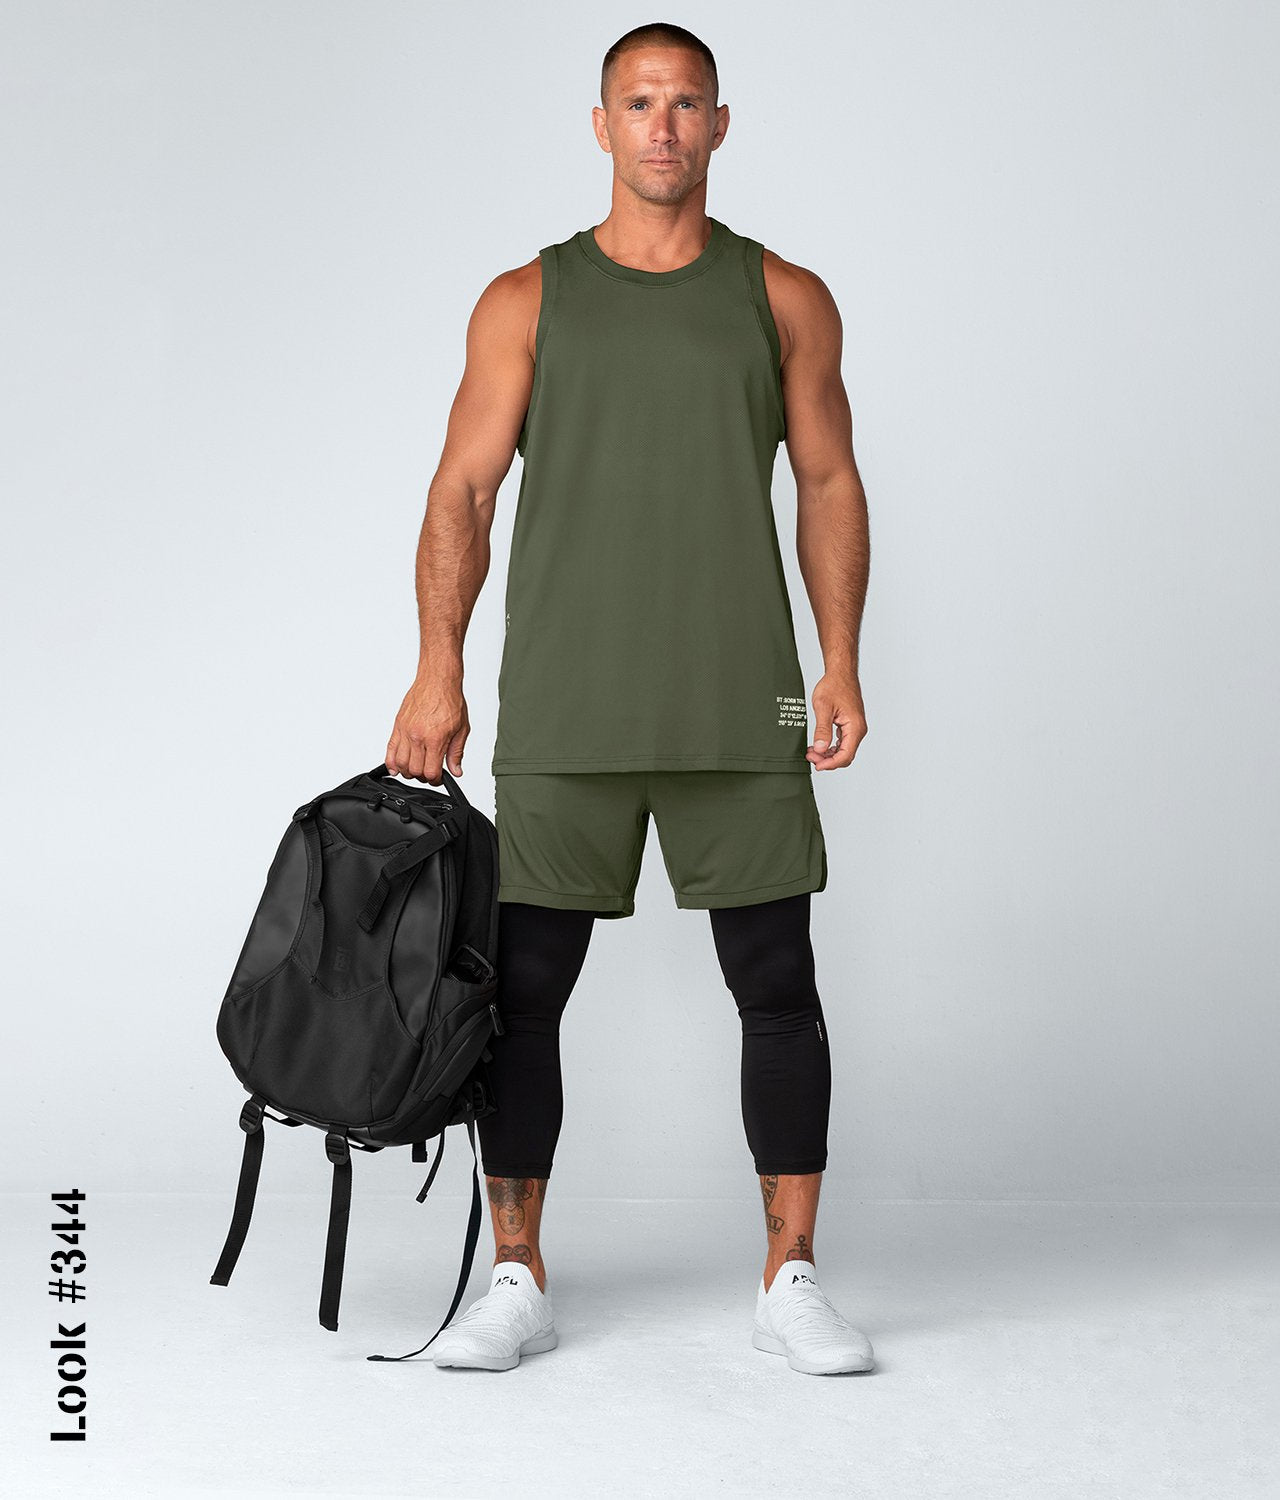 Born Tough United Kingdom Air Pro™ Men's 4-way stretchable Gym Workout Shorts With Legging Liner Military Green